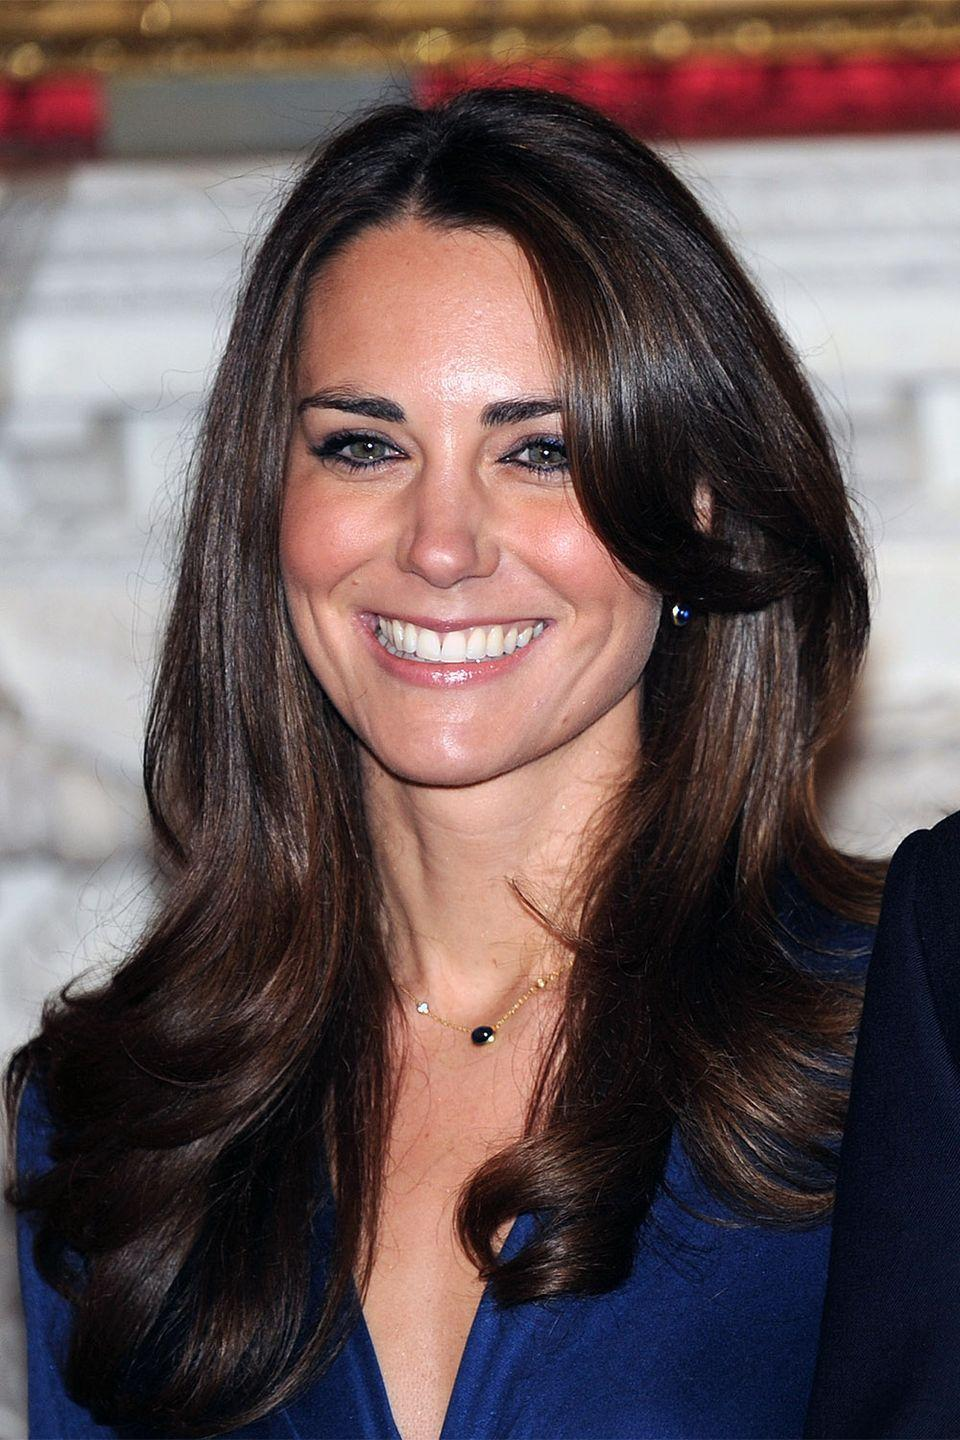 <p>The start of the Kate Middleton bouncy blowout obsession in 2010.</p>